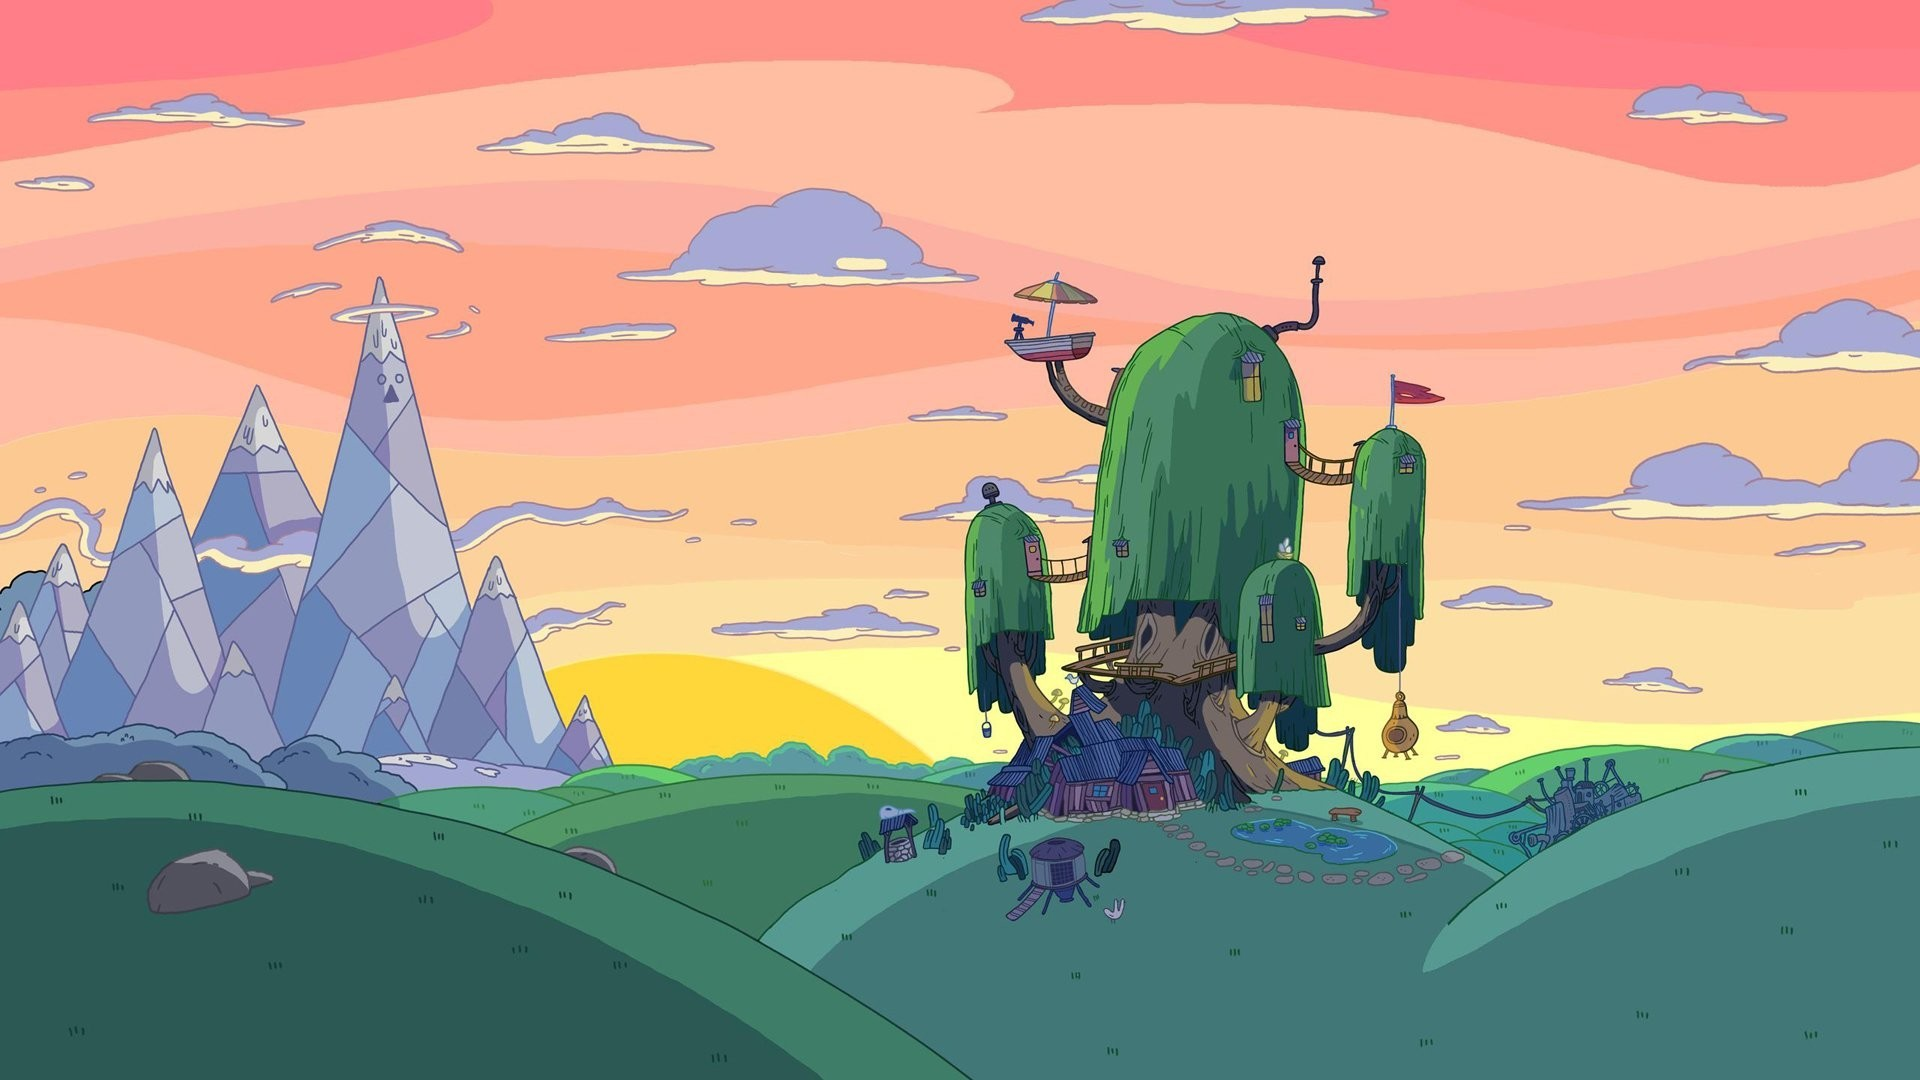 78 Adventure Time Wallpapers on WallpaperPlay 1920x1080